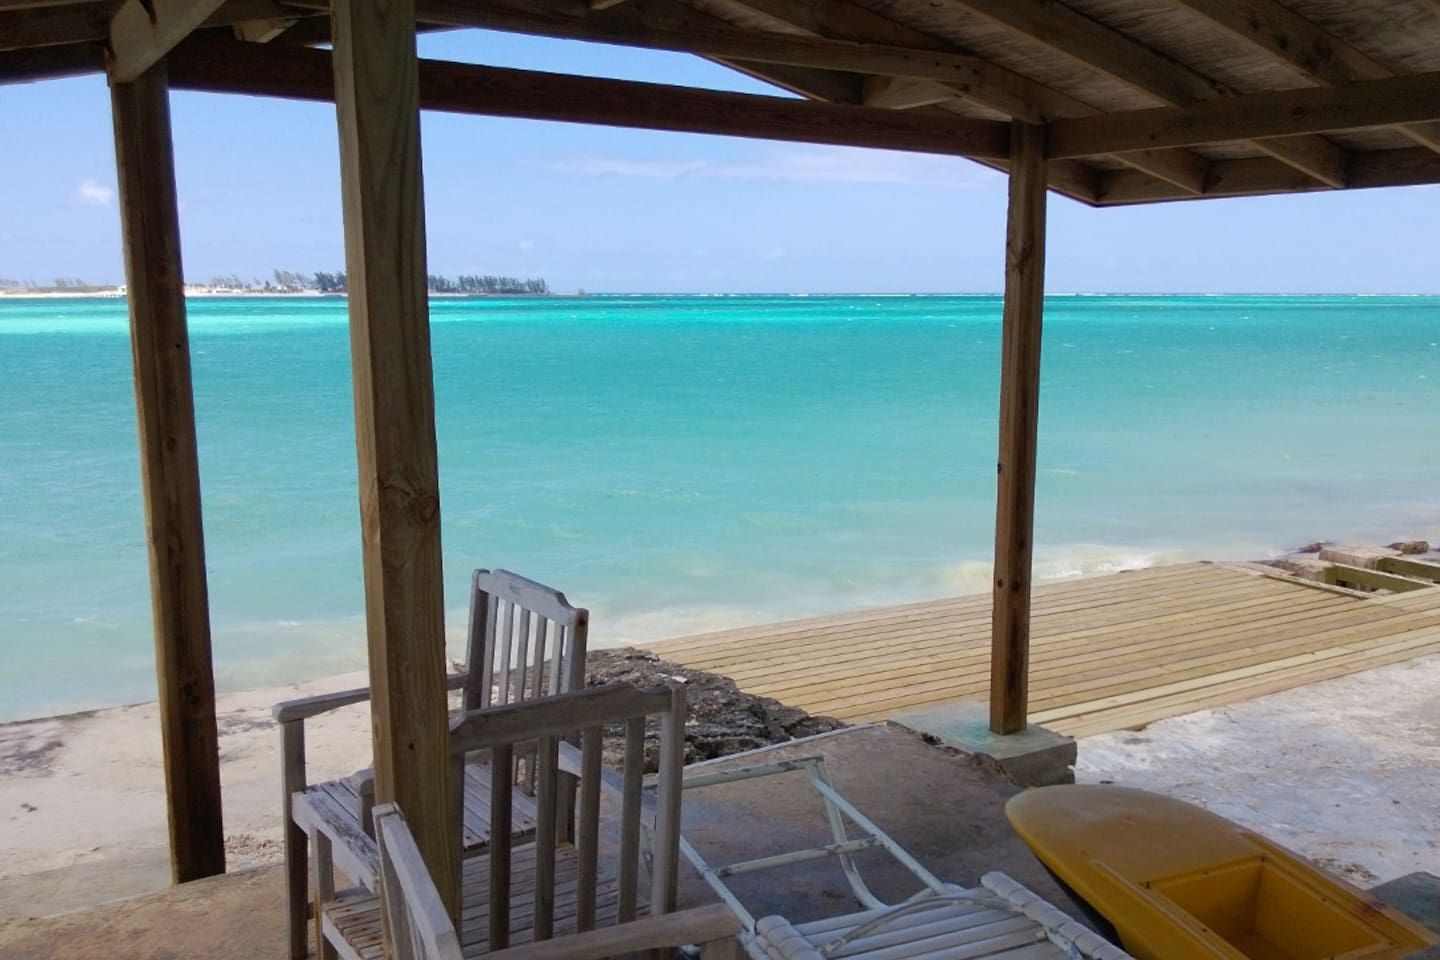 Sit on the deck and marvel at the turquoise waters